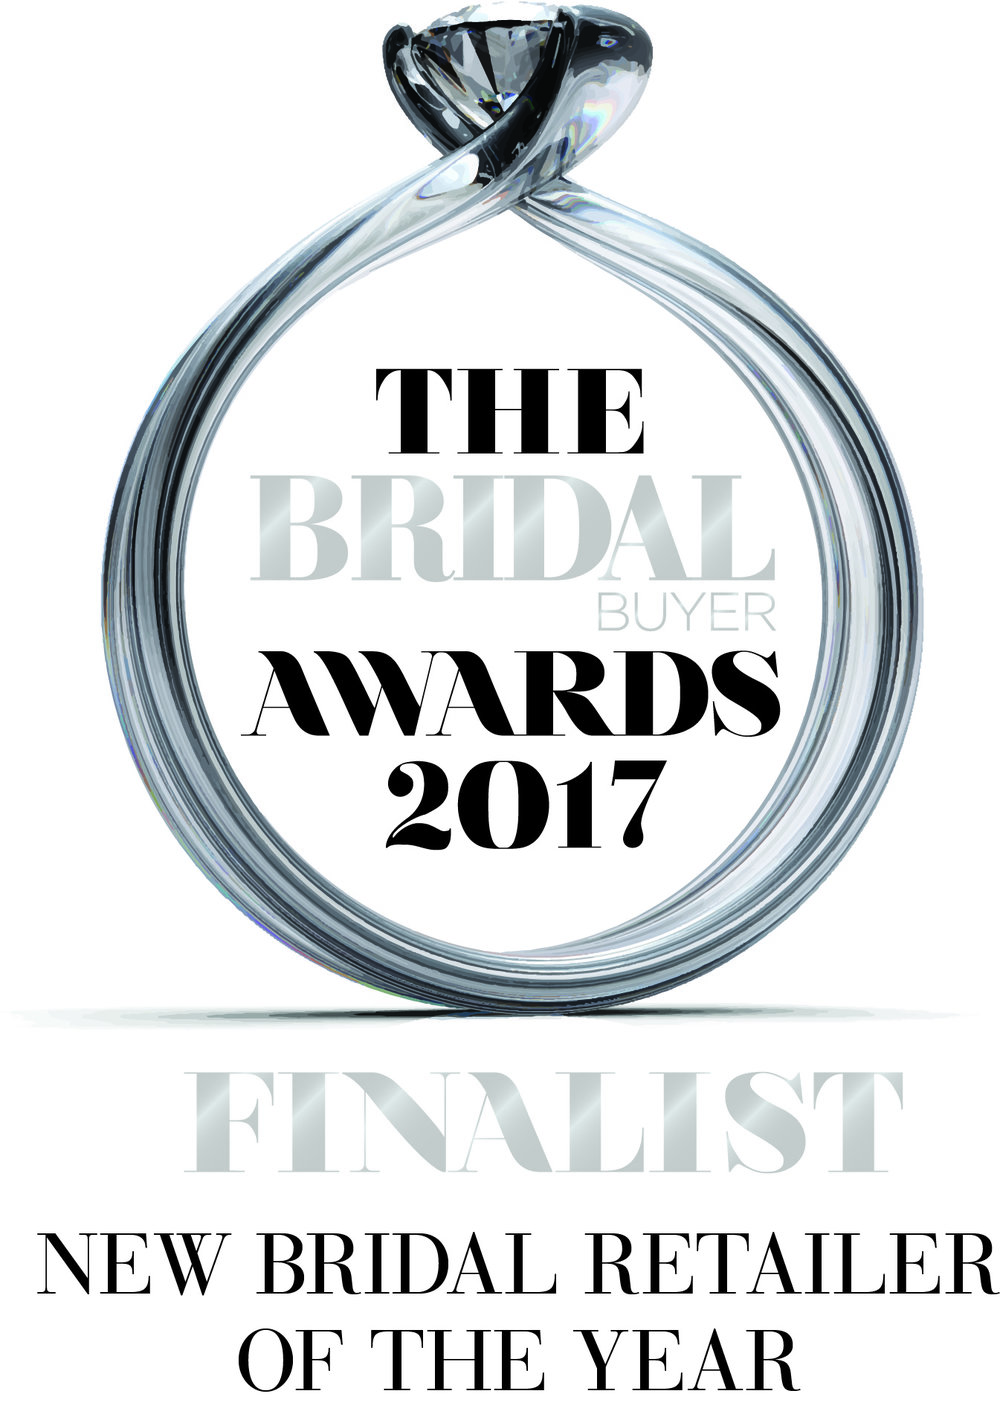 bridal-buyer-awards-finalist-logo.jpg